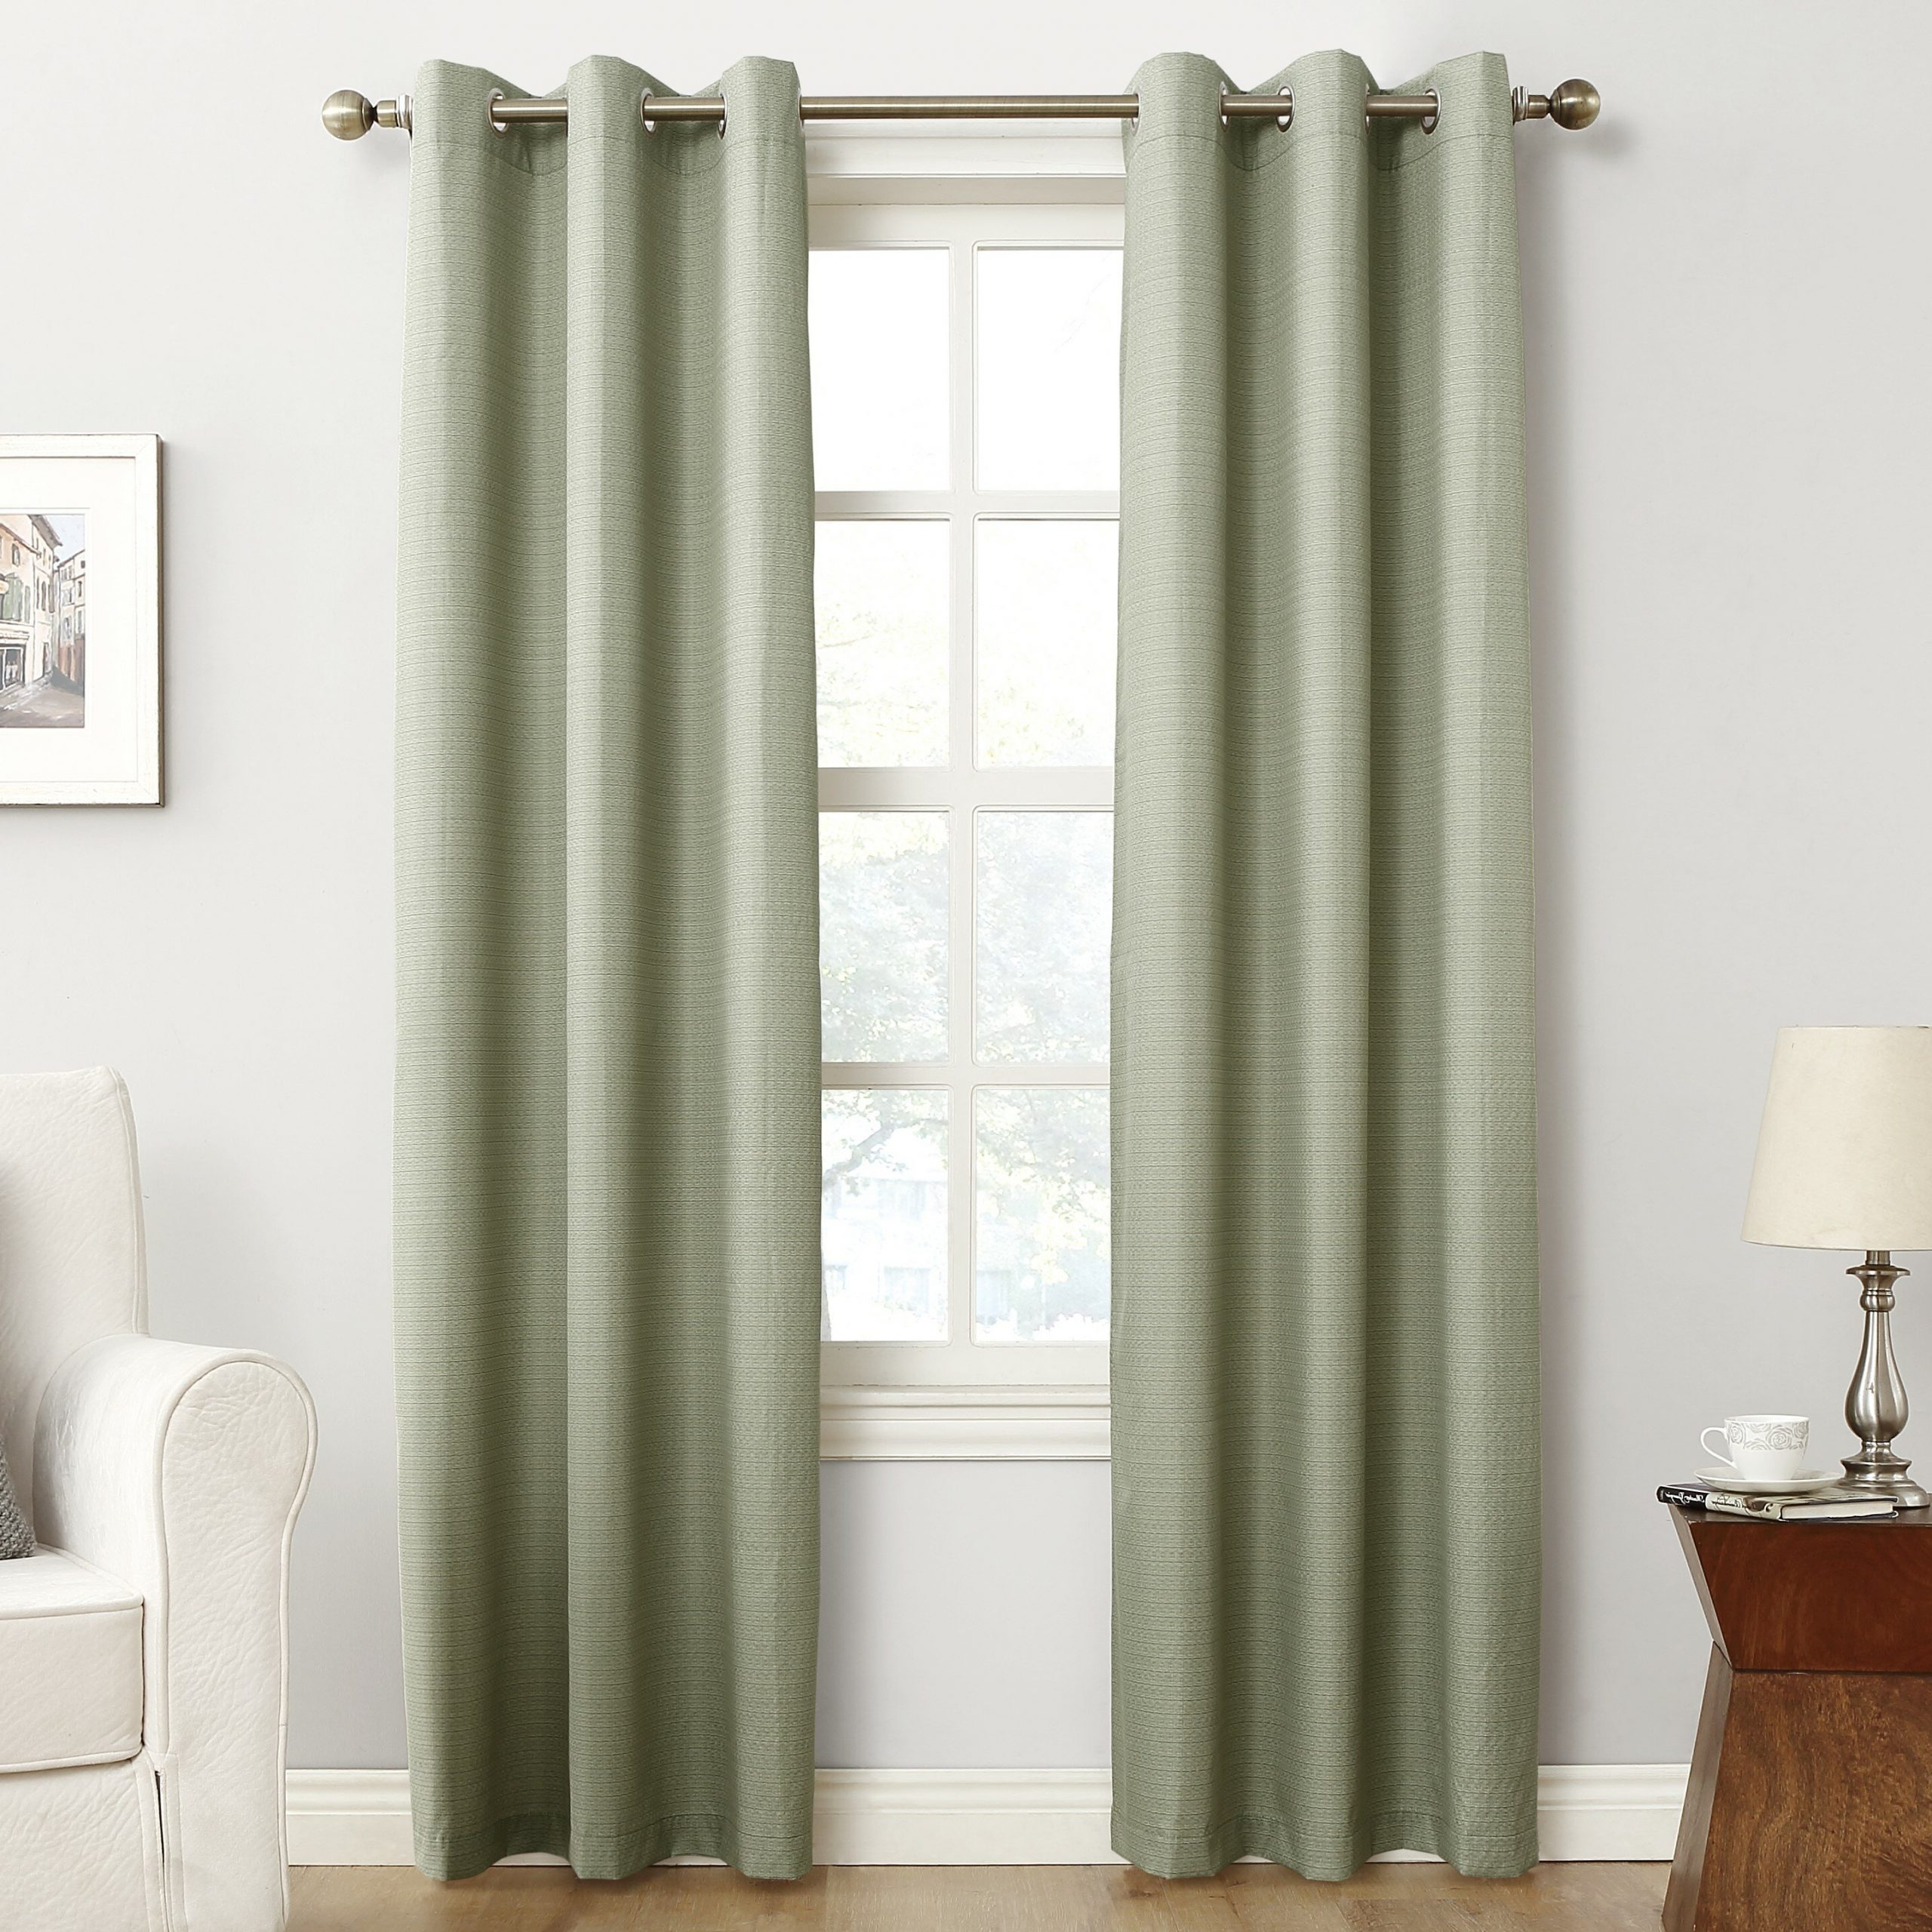 Widely Used Cooper Textured Solid Blackout Thermal Grommet Single Curtain Panel Throughout Cooper Textured Thermal Insulated Grommet Curtain Panels (View 12 of 20)